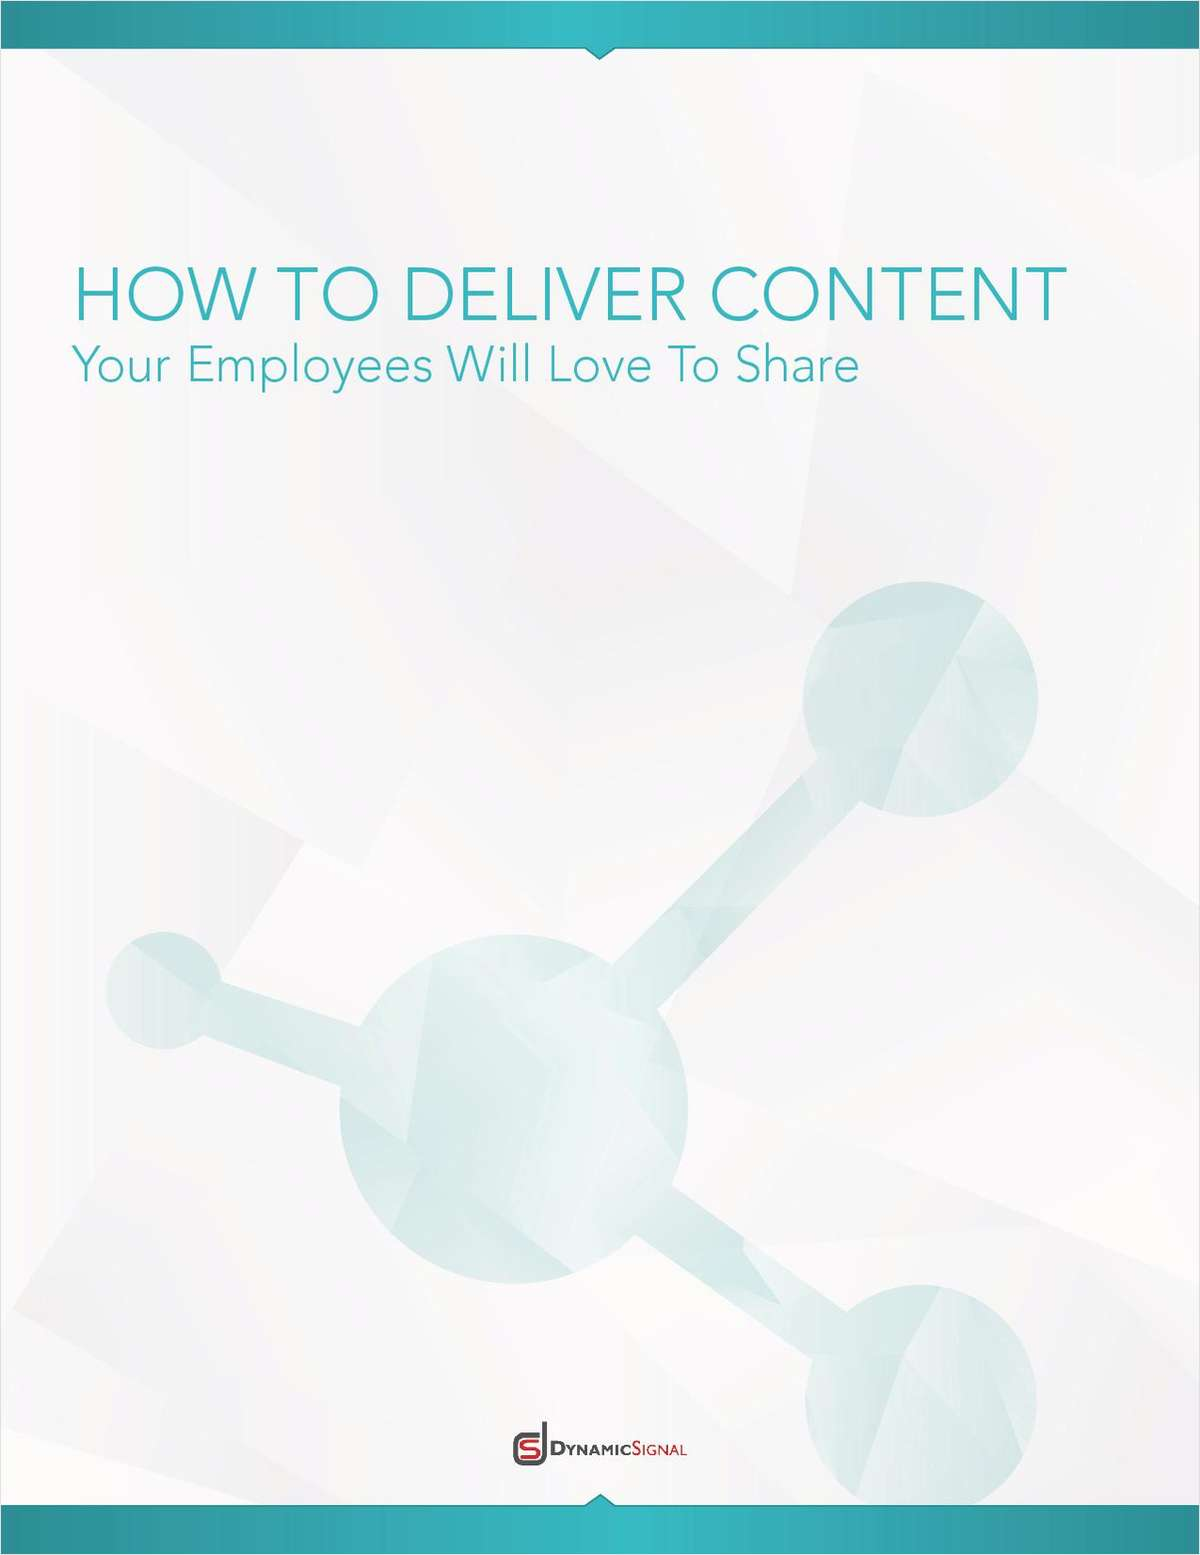 Learn How to Deliver Content Your Employees Love to Share